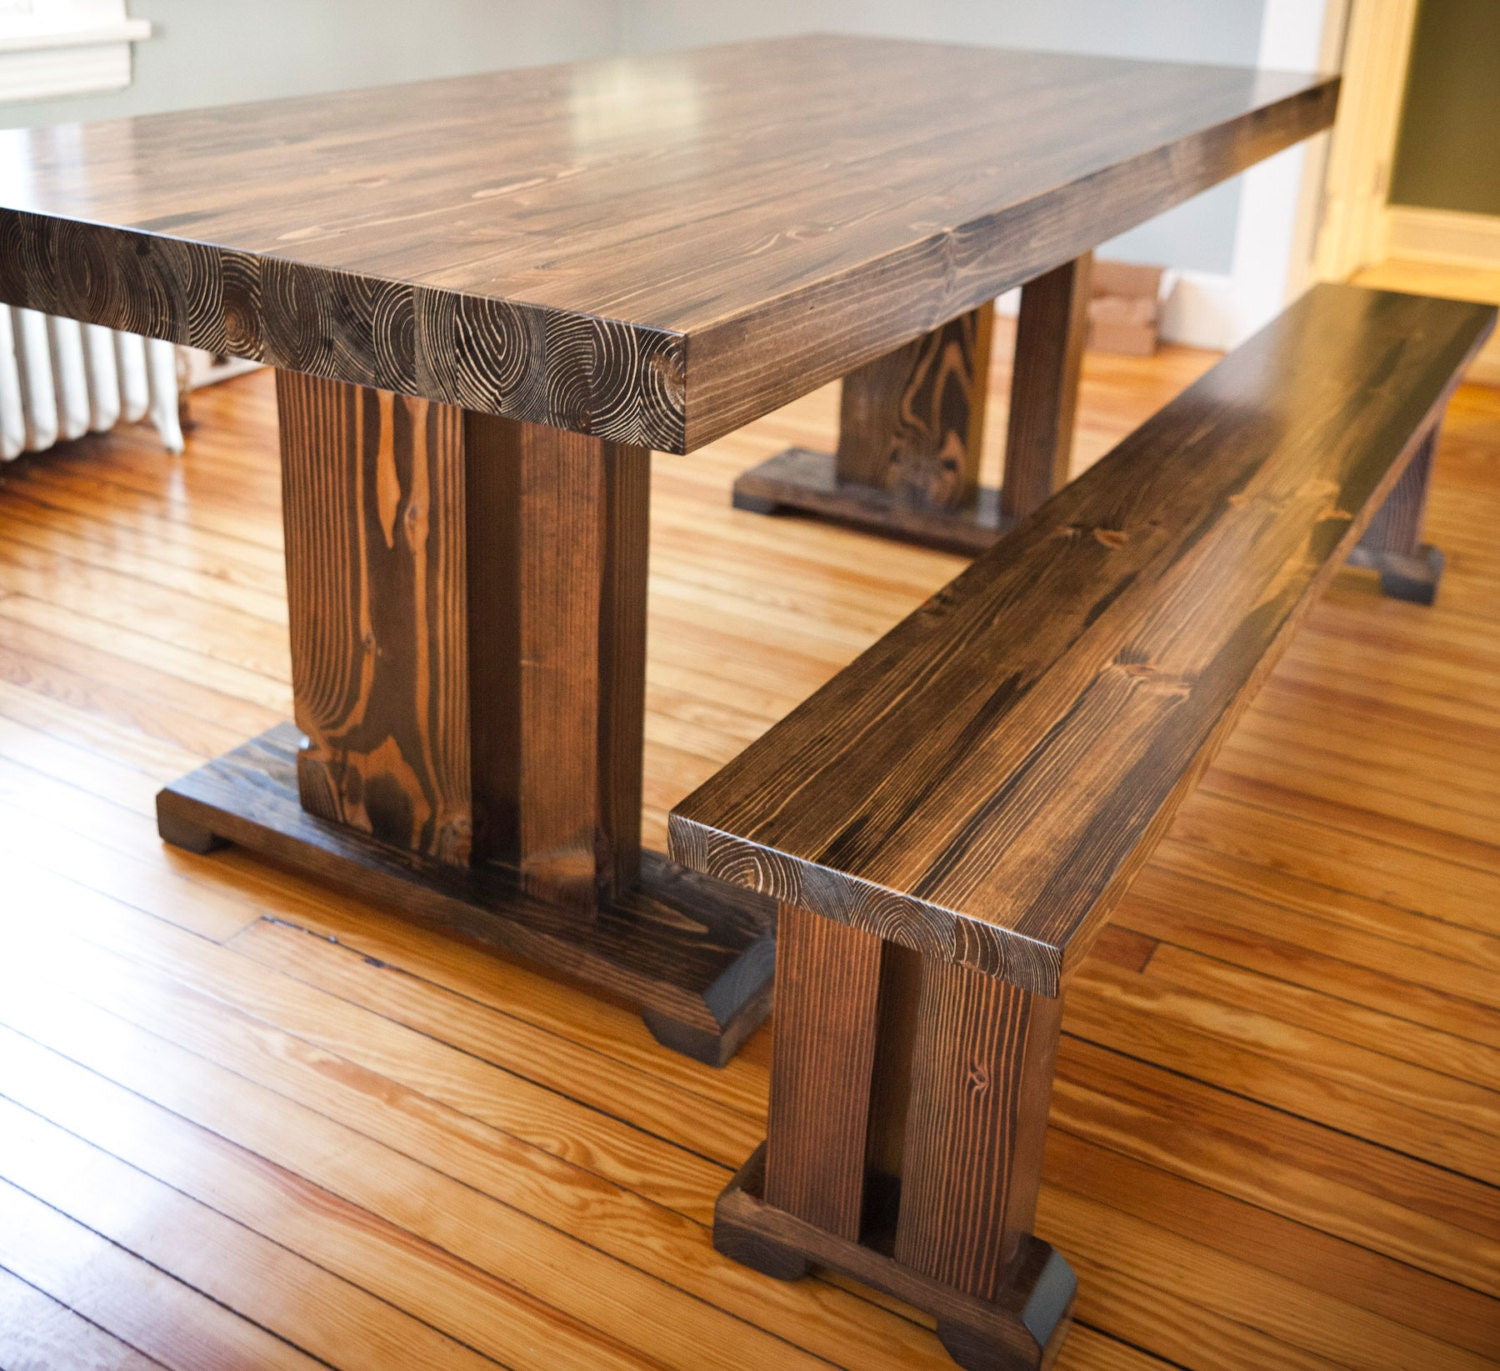 8ft Butcher Block Style Table Solid Wood Farmhouse by EmmorWorks